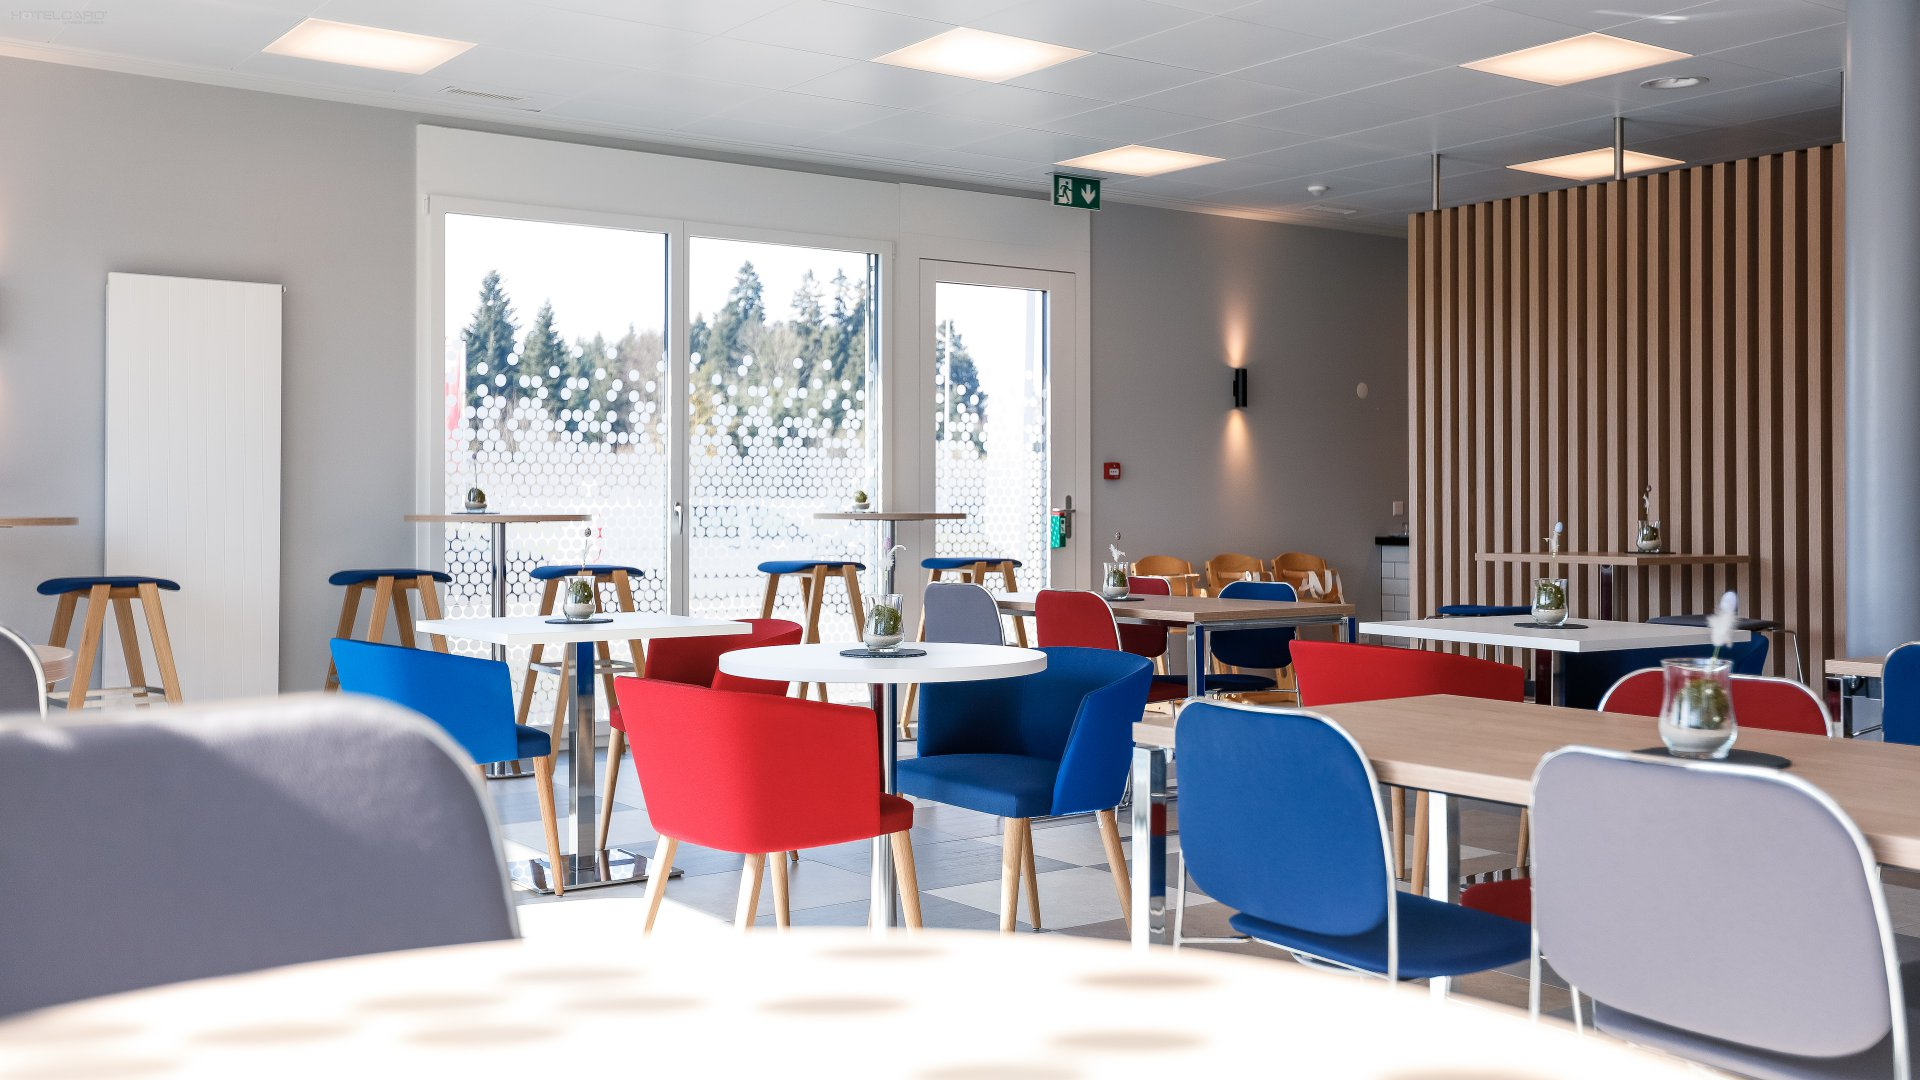 Holiday Inn Express Luzern-Neuenkirch 4